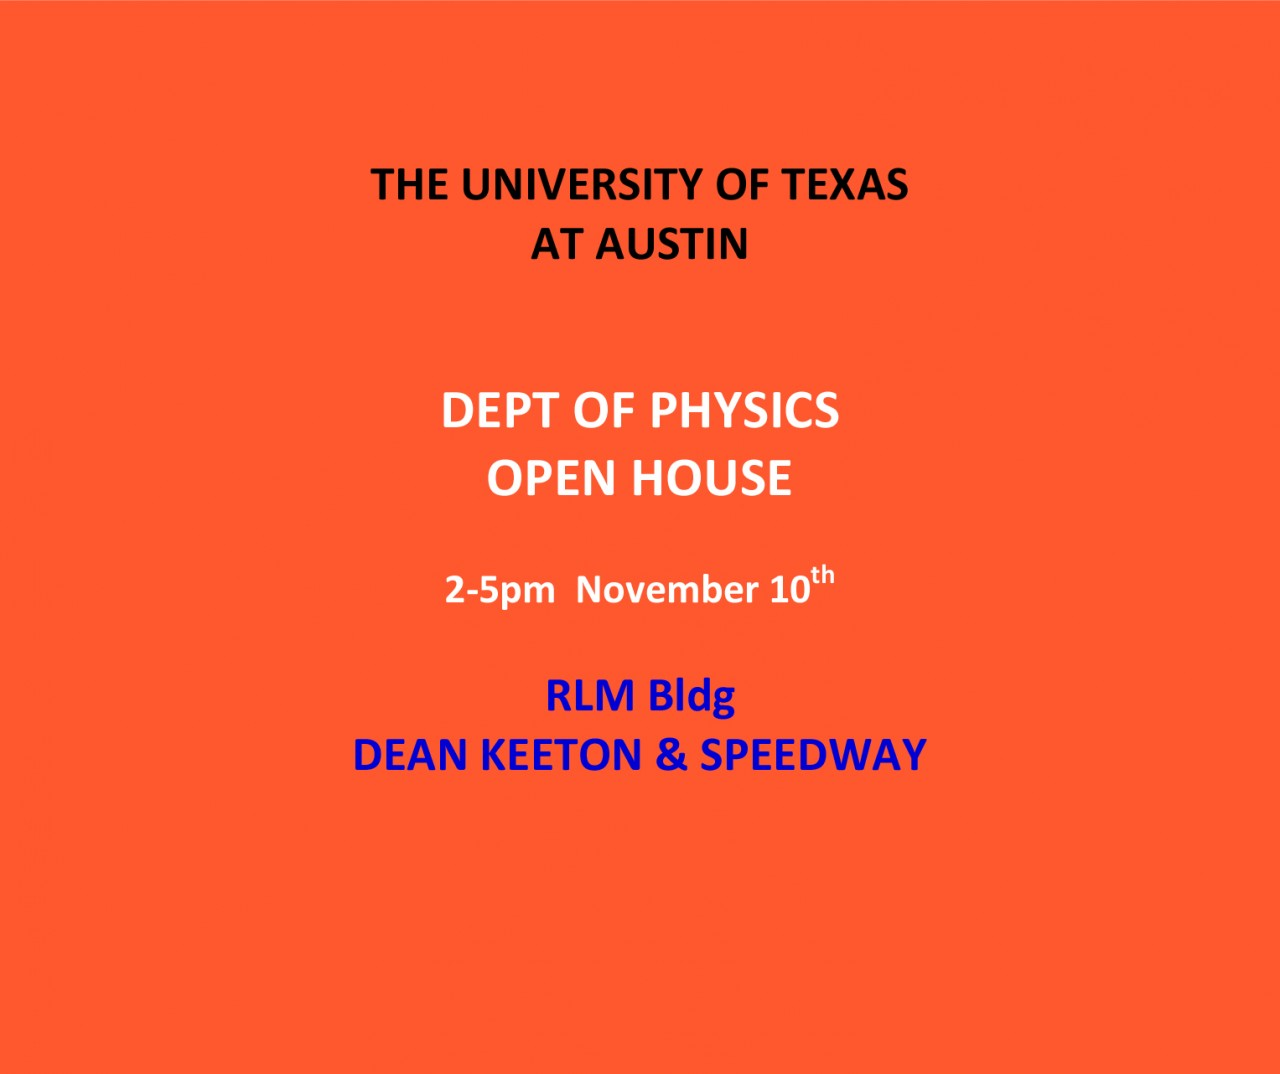 Physics Department OPEN HOUSE - November 10th from 2-5 pm